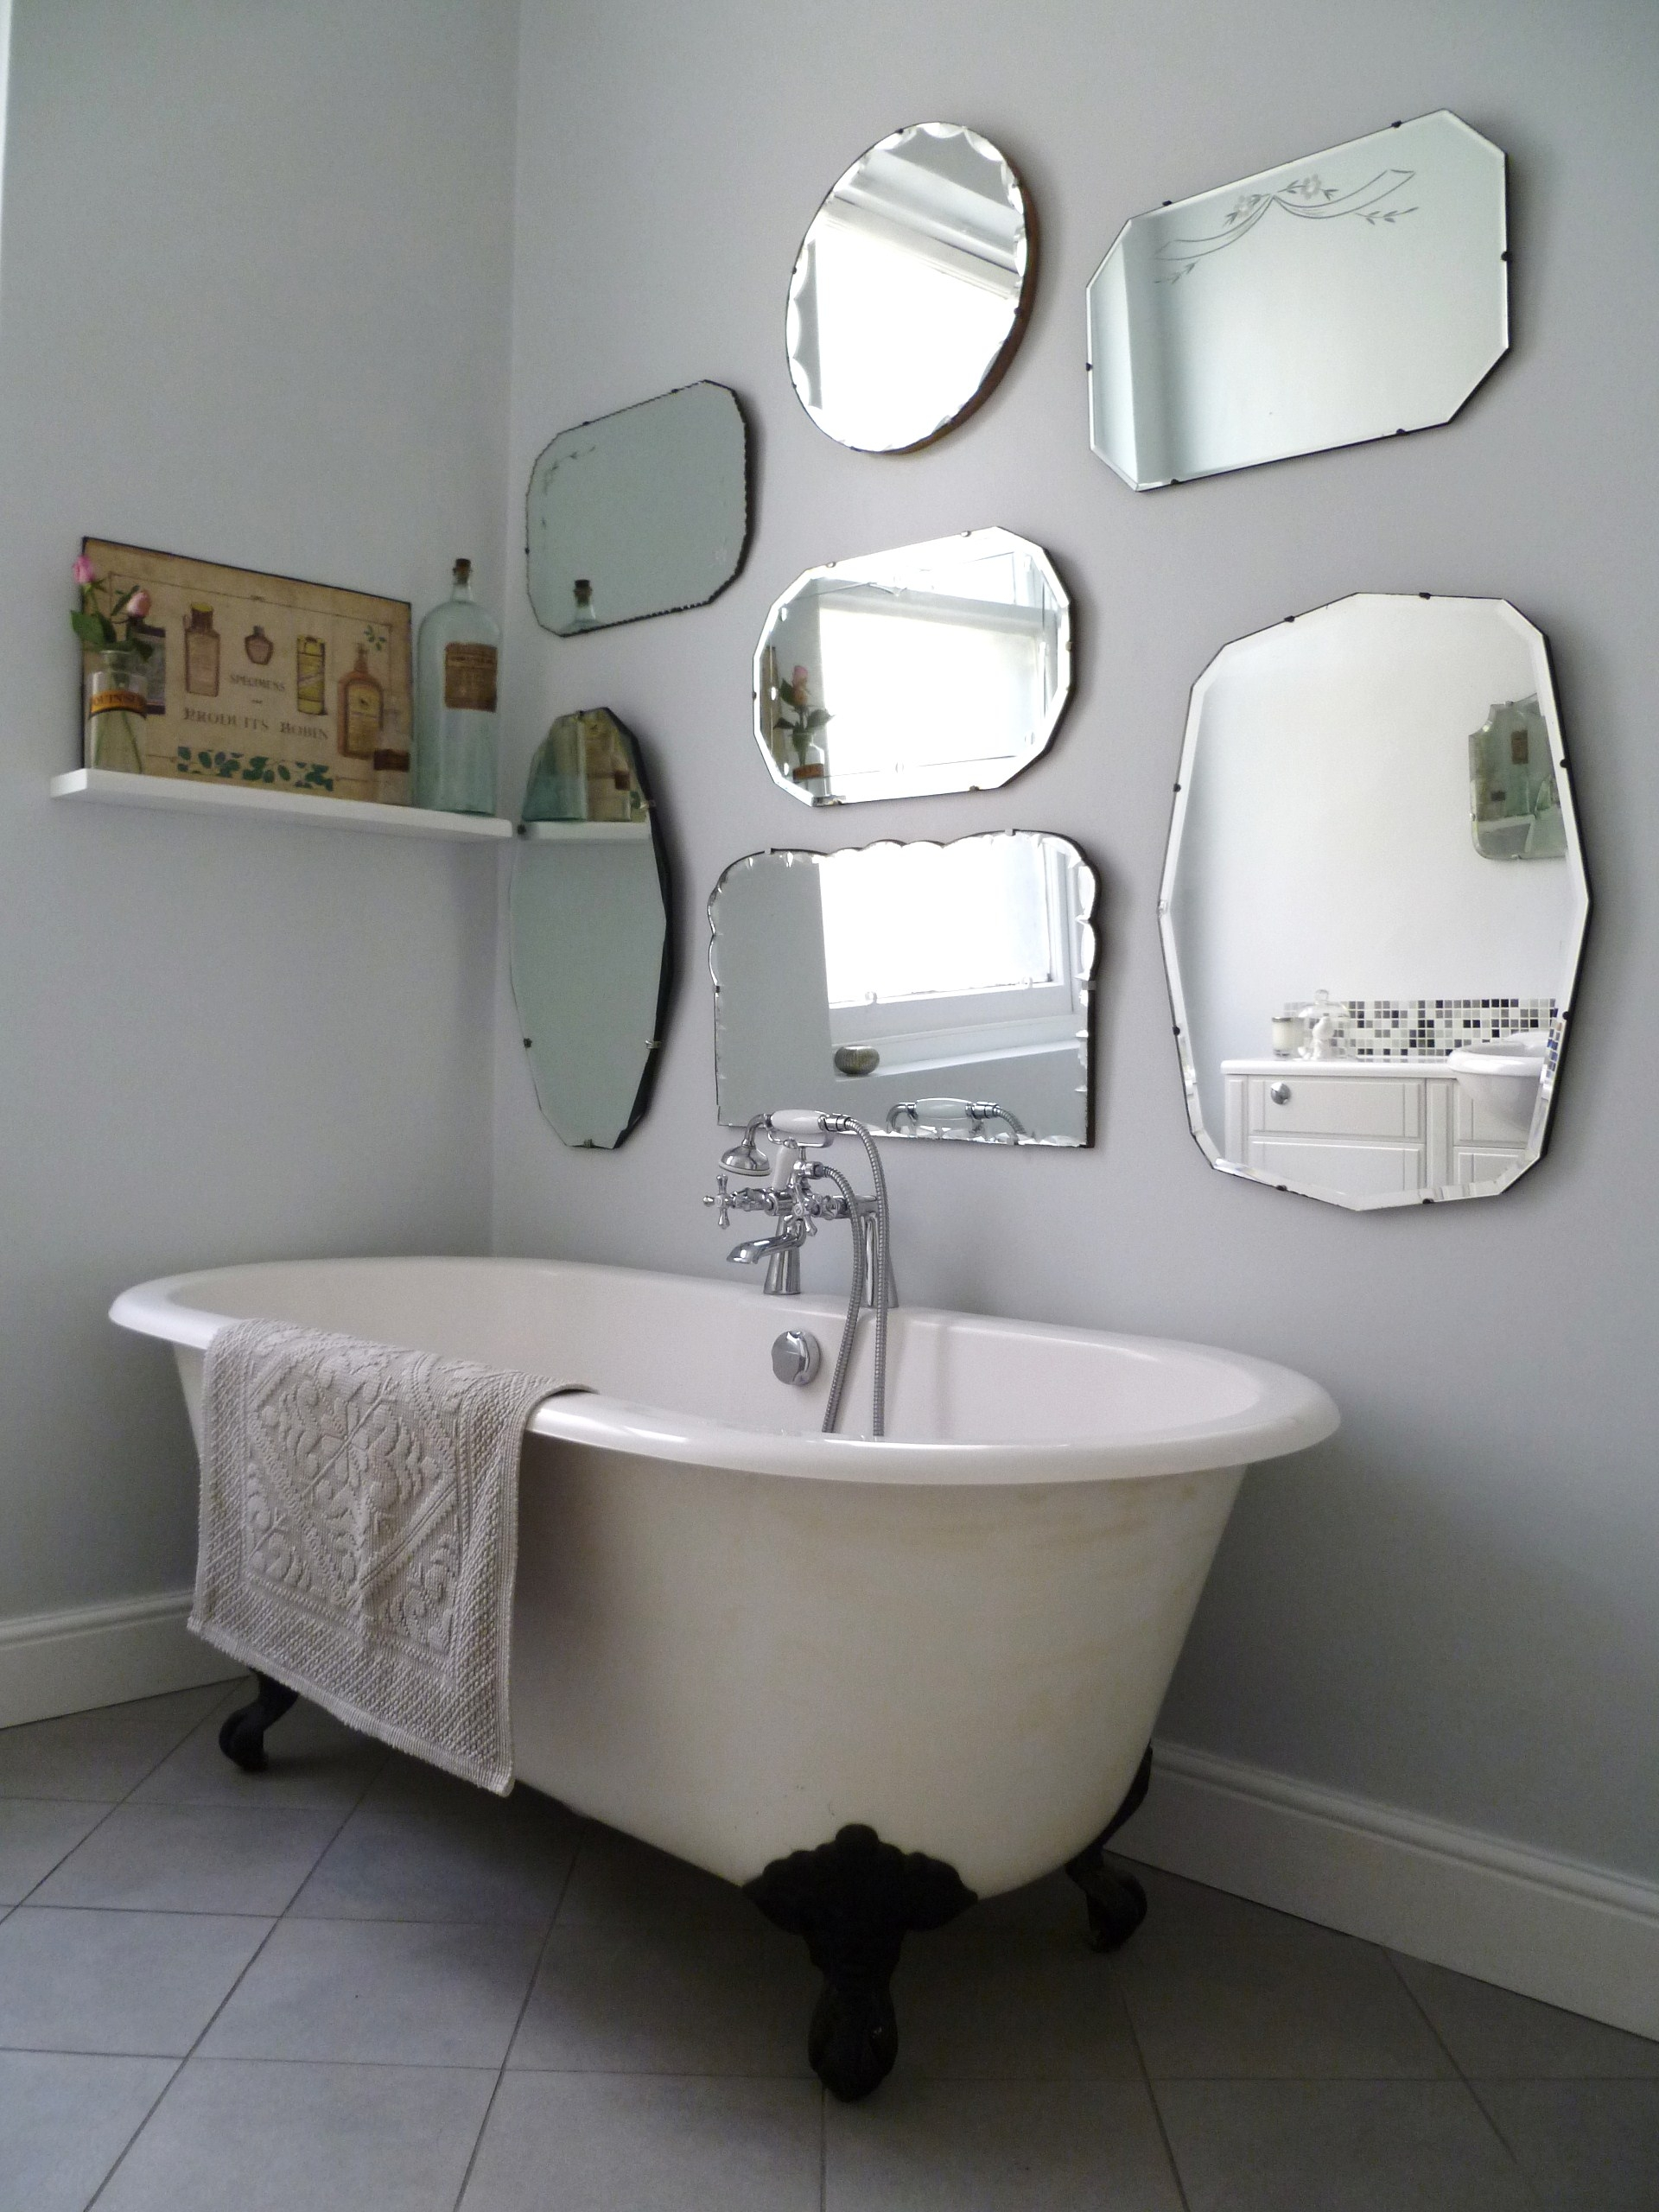 How To Hang A Display Of Vintage Mirrors Mirror Walls Grey And Regarding Antique Small Mirrors (Image 11 of 15)